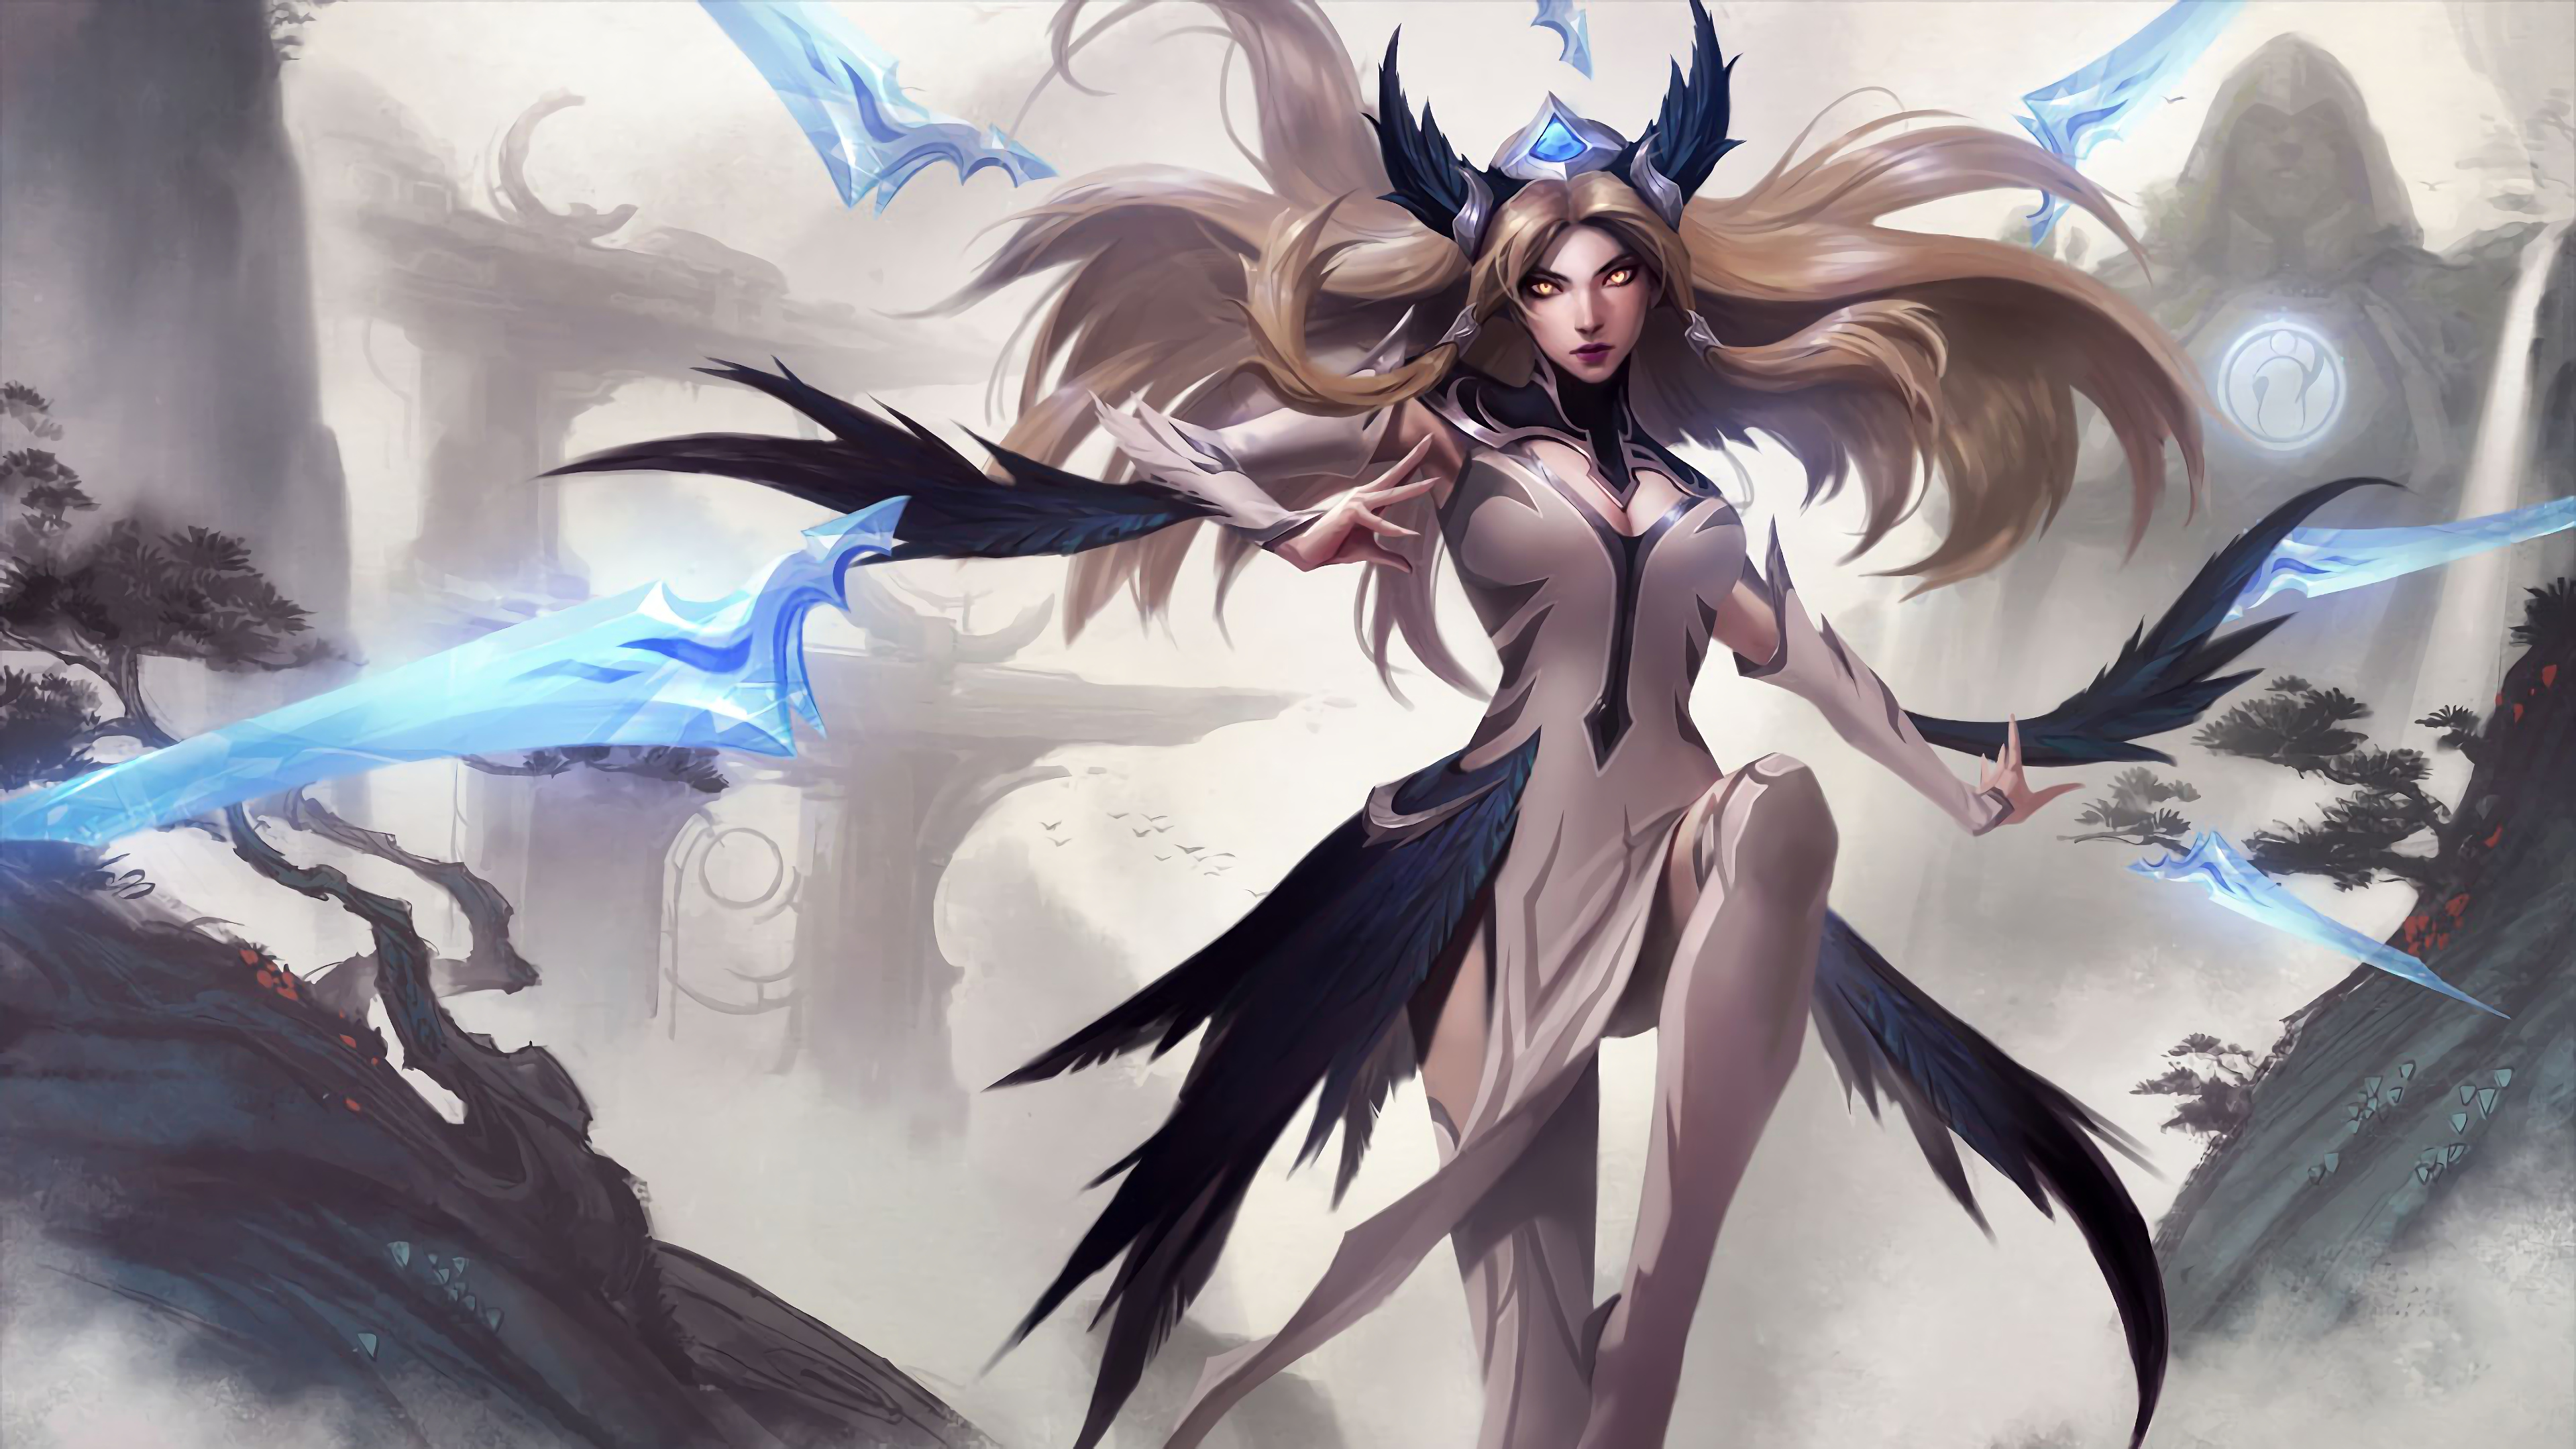 Invictus Gaming Irelia Splash Art Lol 4k Wallpaper 66